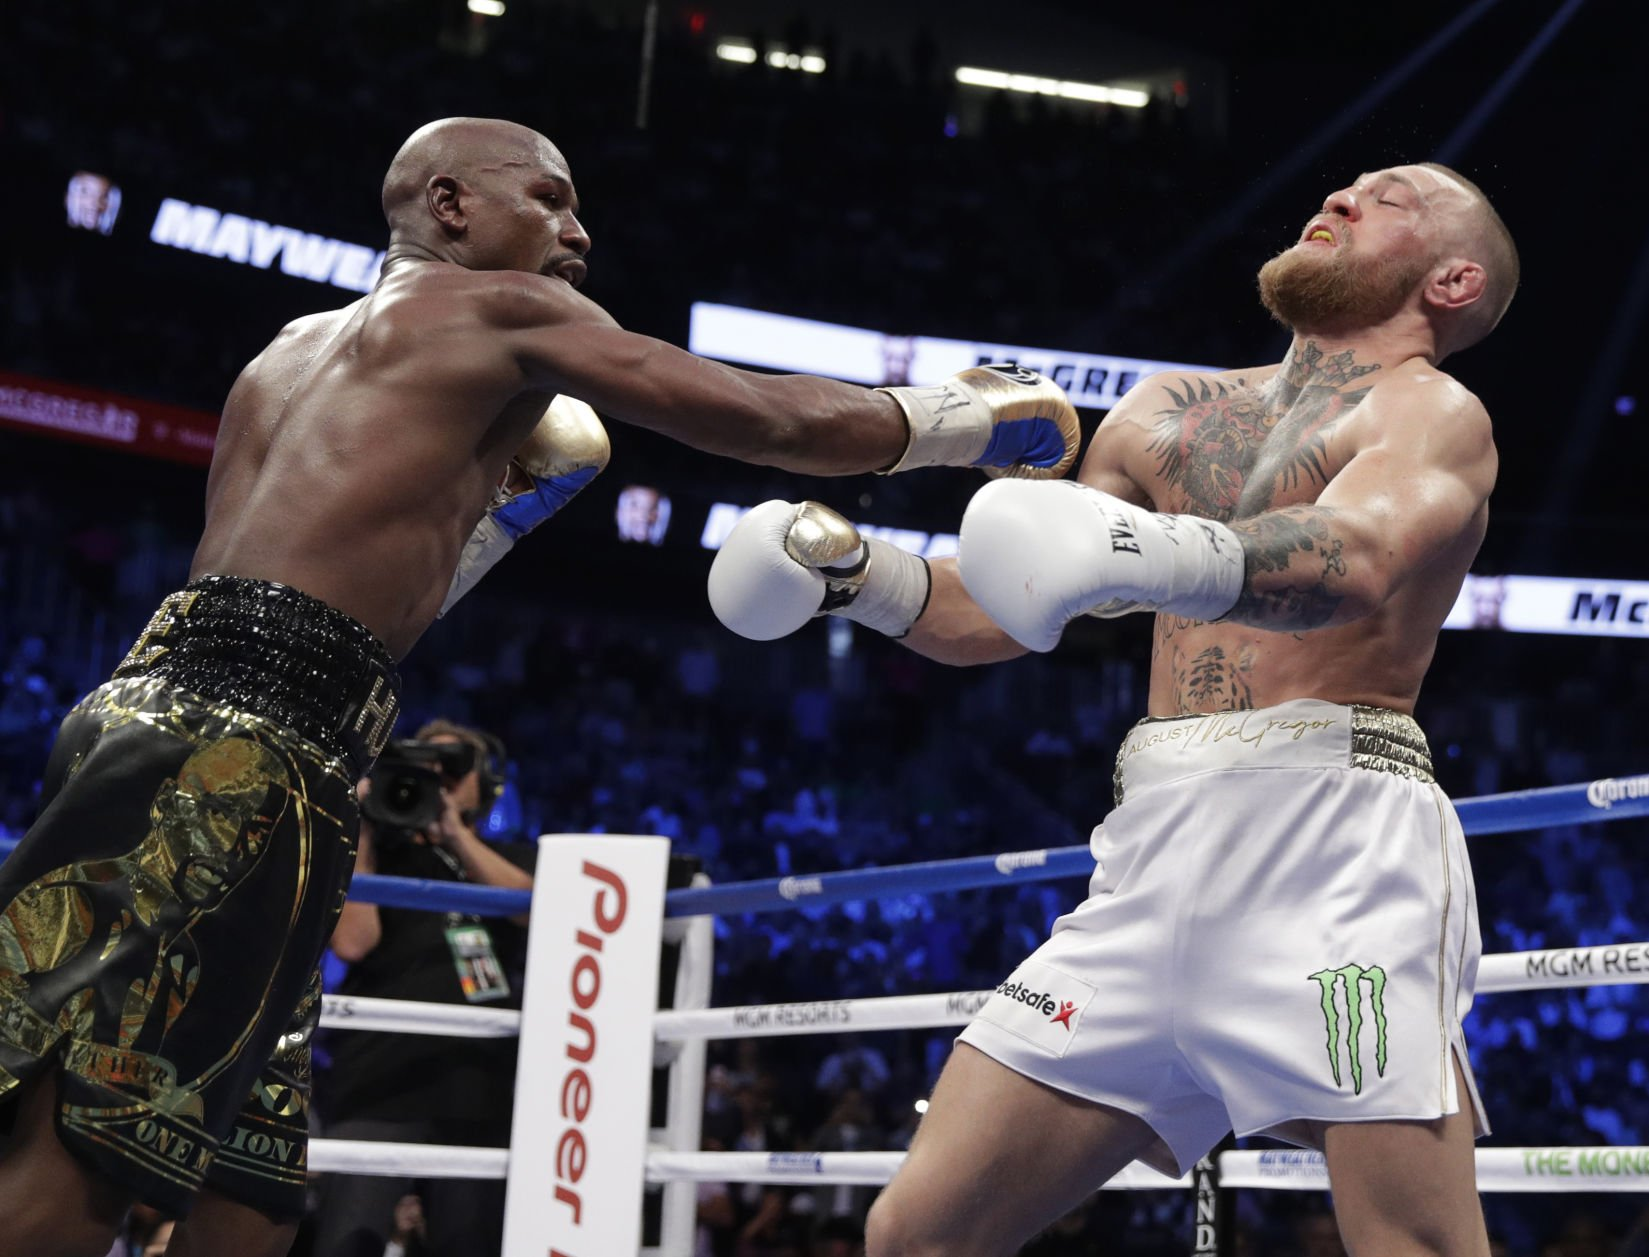 The Best Twitter Reactions To The Mayweather/McGregor Fight